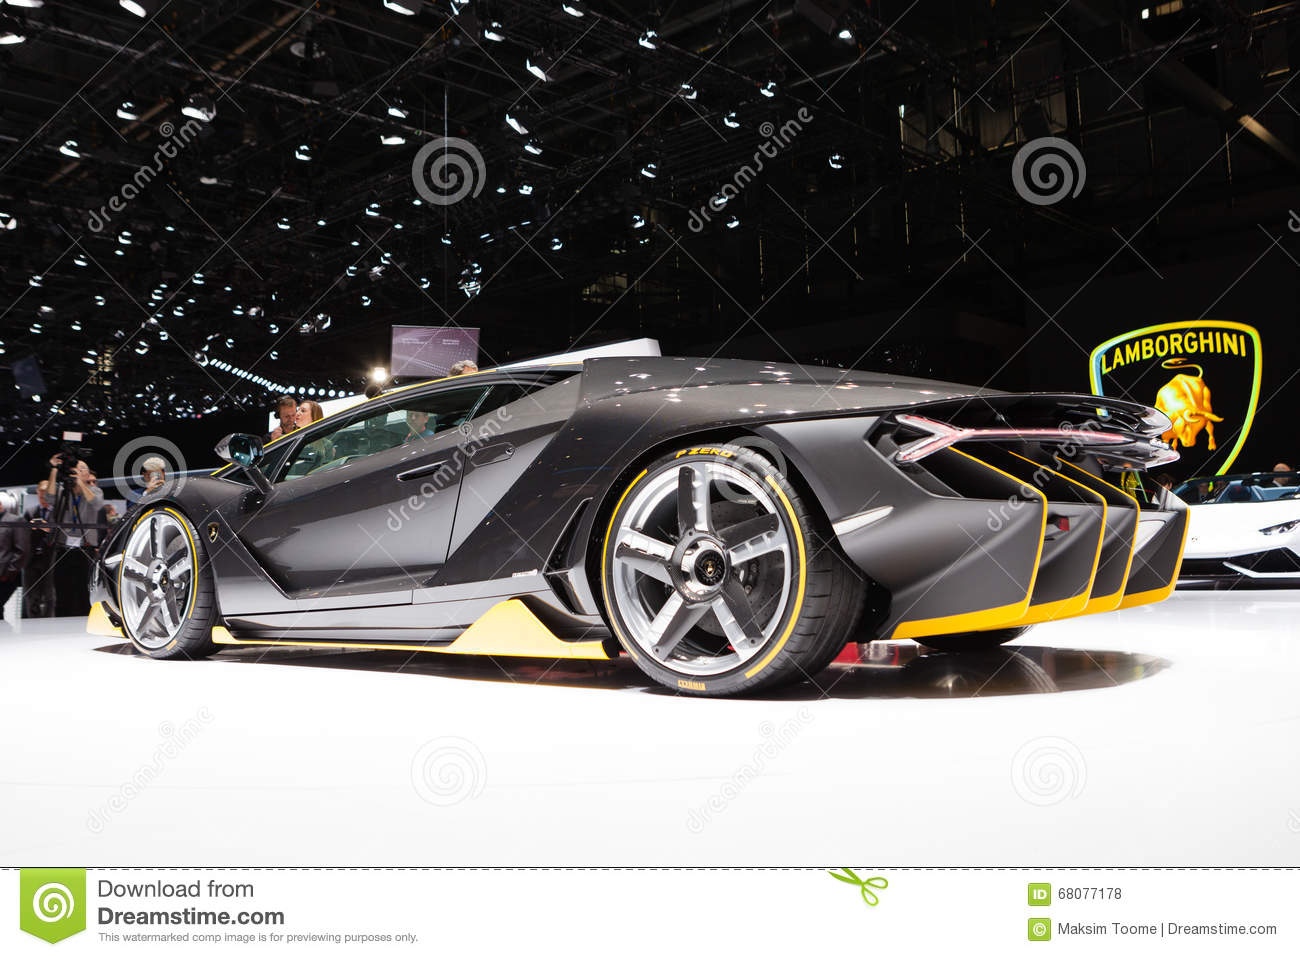 lamborghini centenario in geneva editorial stock photo - image of